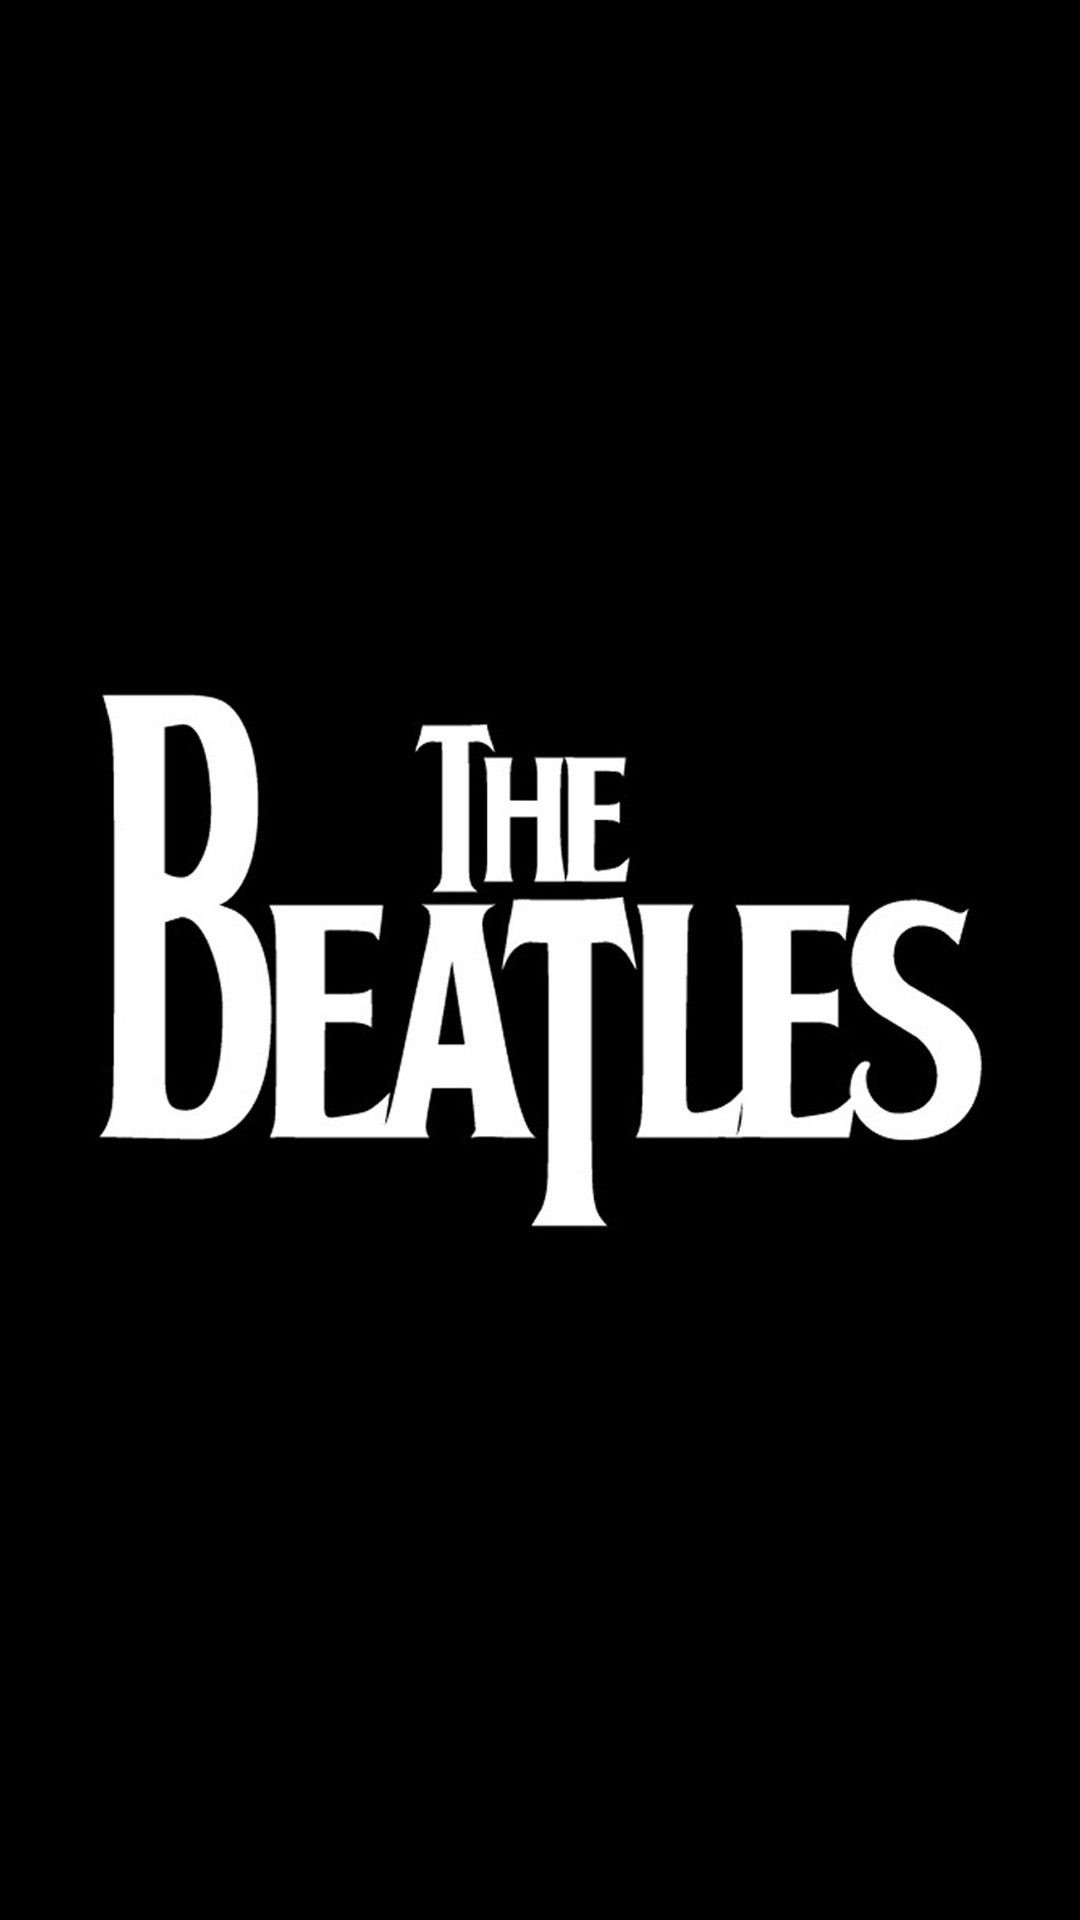 Beatles Wallpaper For Iphone 71 Images